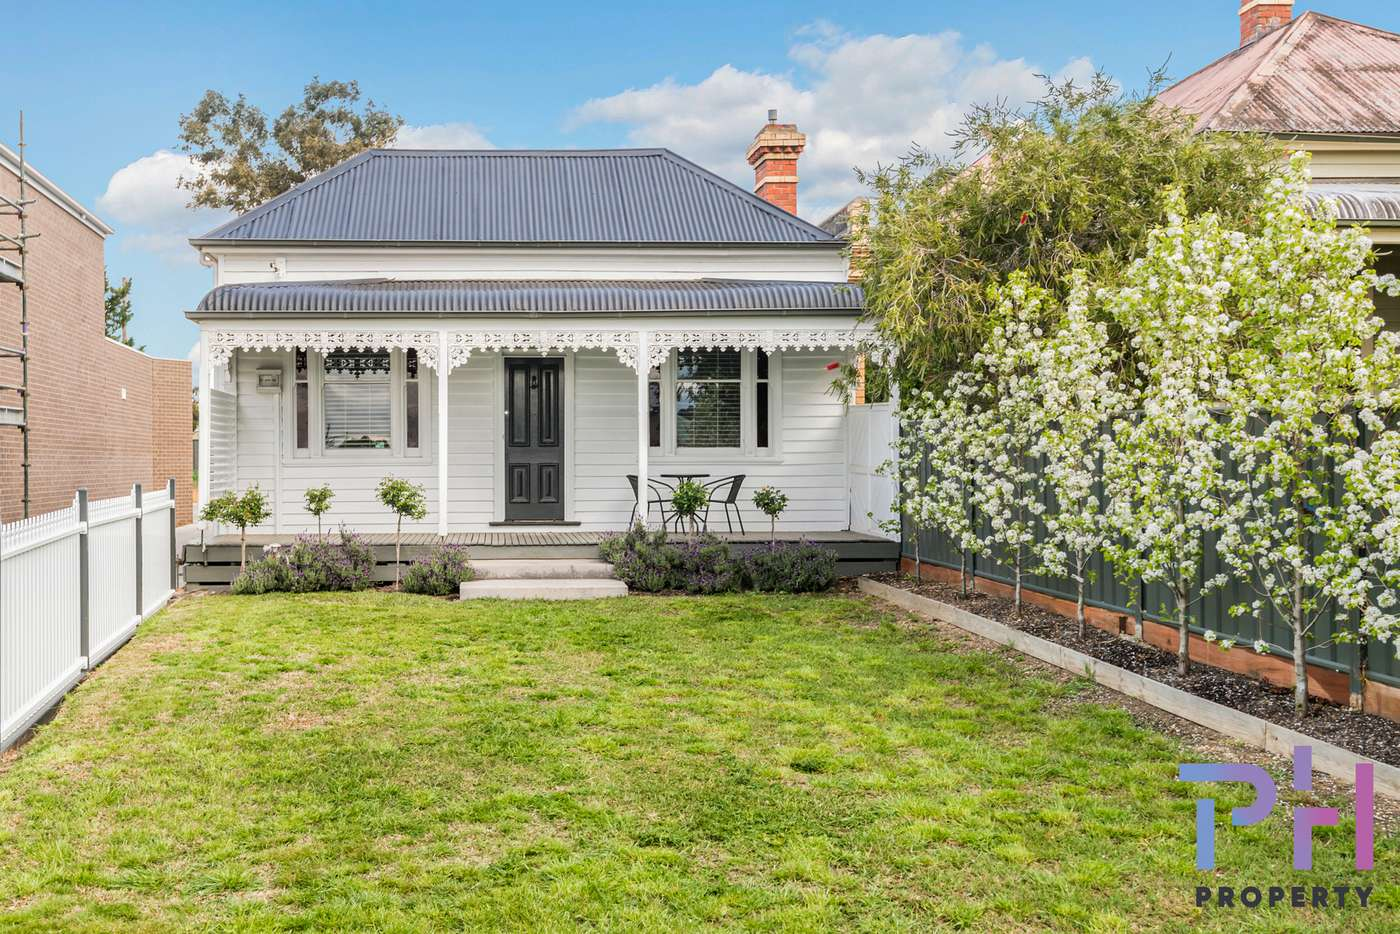 Main view of Homely house listing, 185a King Street, Bendigo VIC 3550